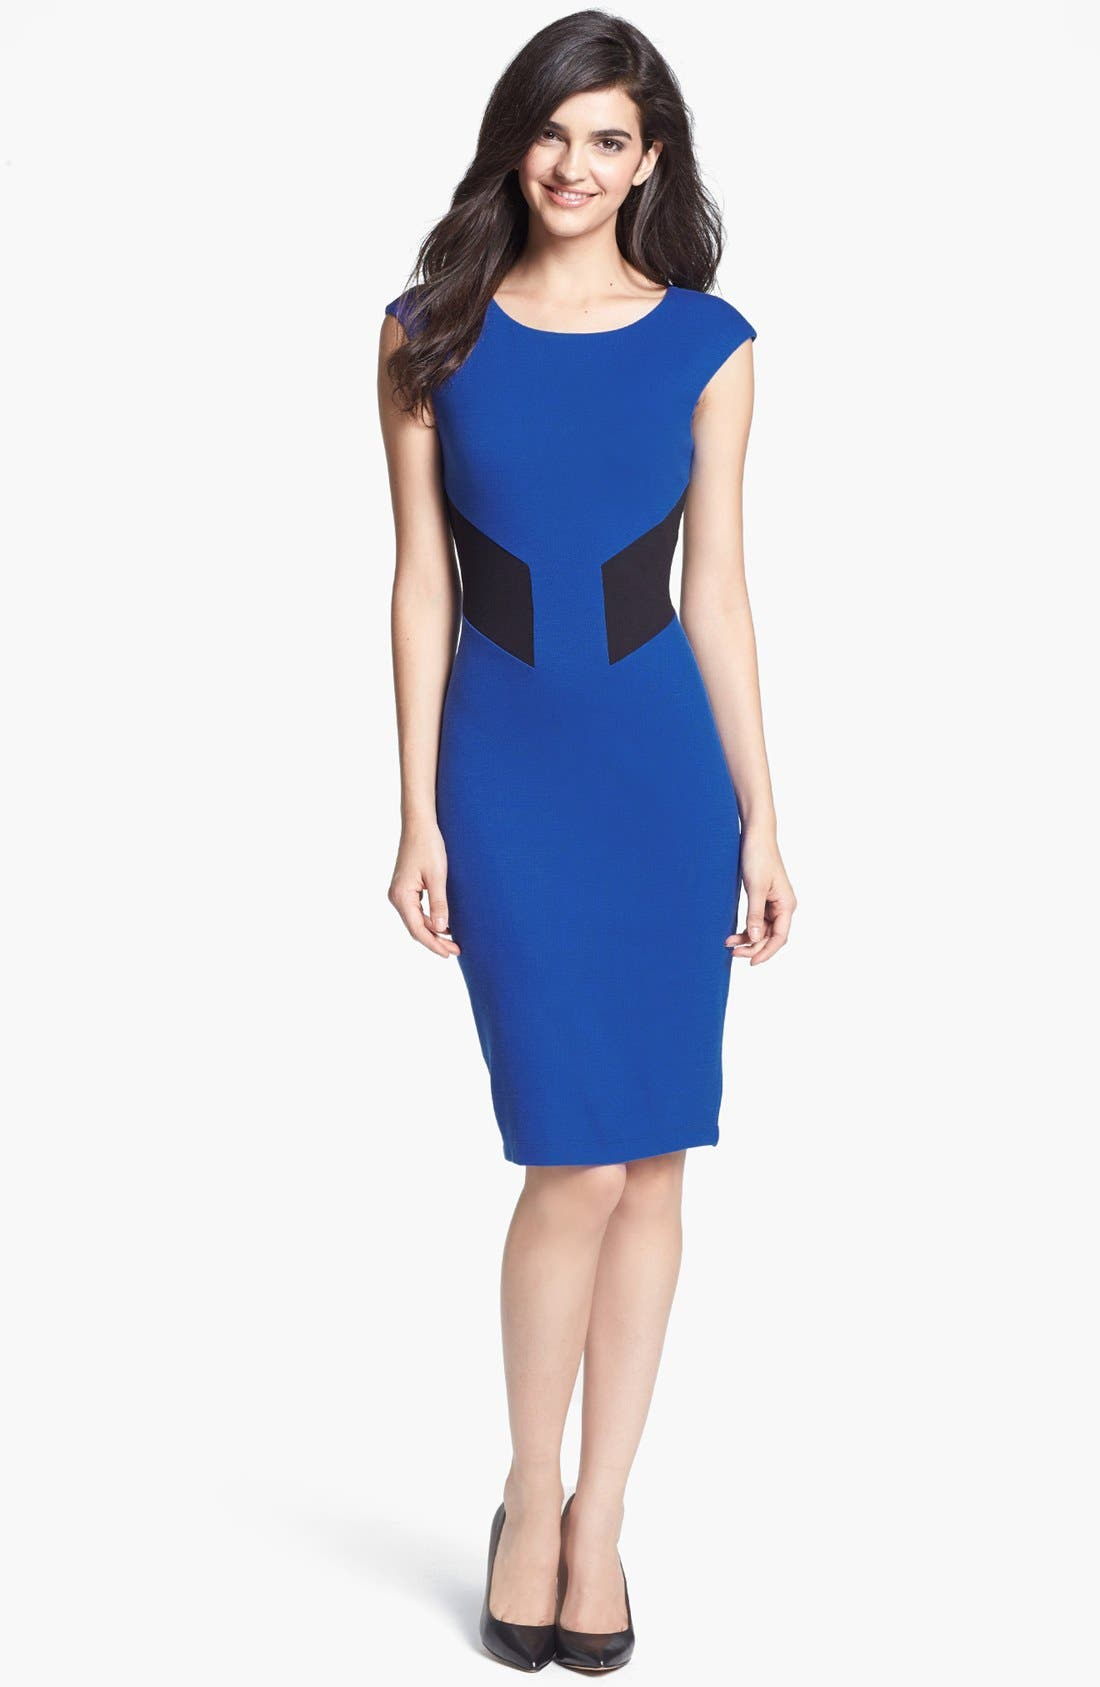 Main Image - B44 Dressed by Bailey 44 'Biotech' Back Cutout Colorblock Sheath Dress